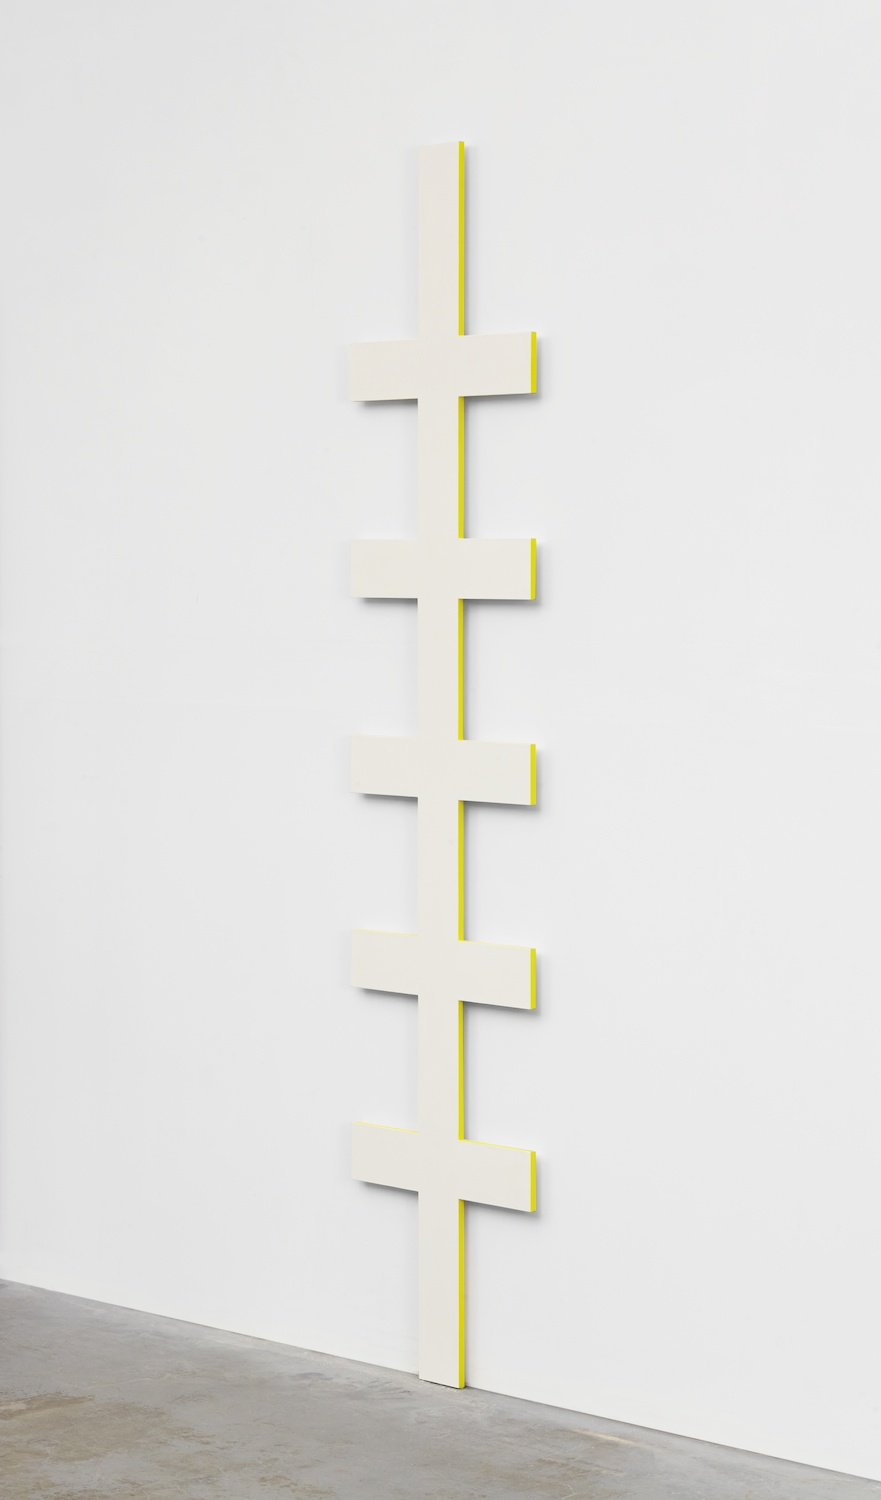 Lisa Williamson  Ladder  2014 Acrylic on aluminum 84h x 18w x 1d in LW142